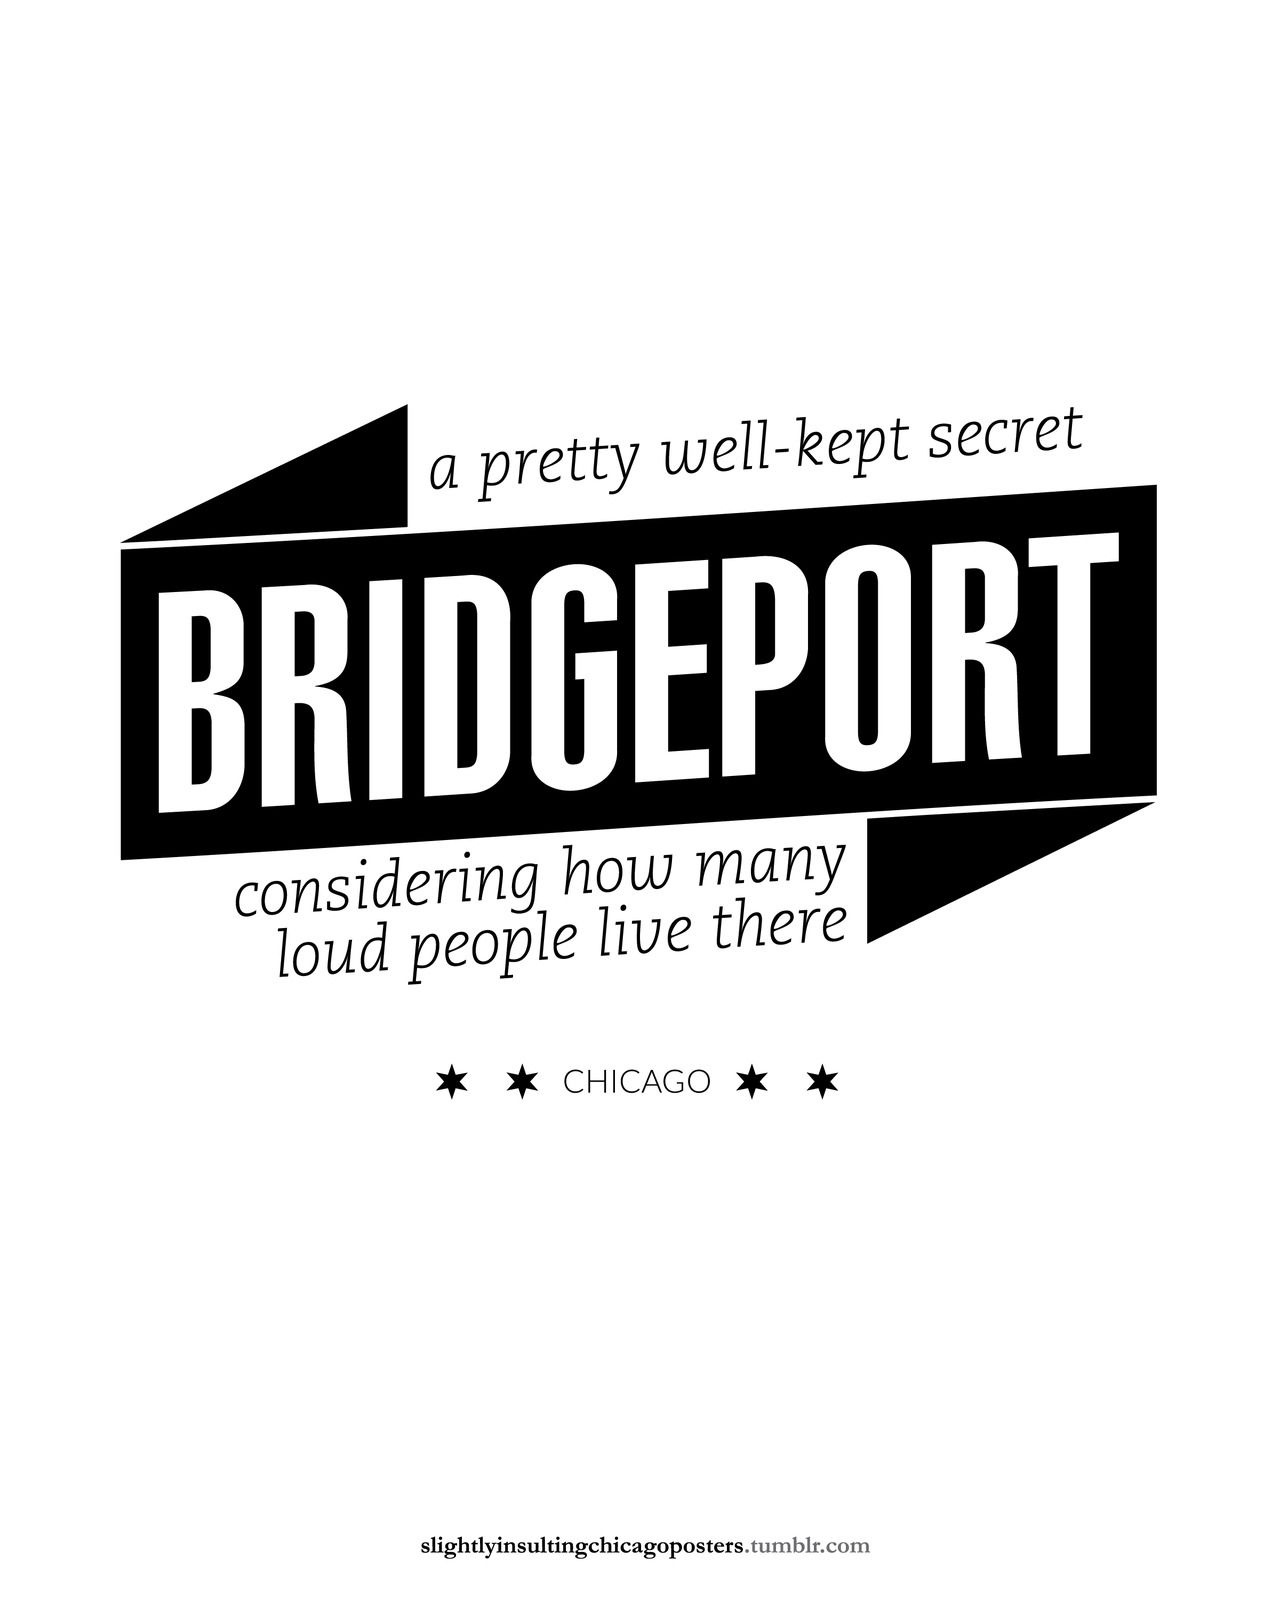 Bridgeport | Slightly Insulting Chicago Posters